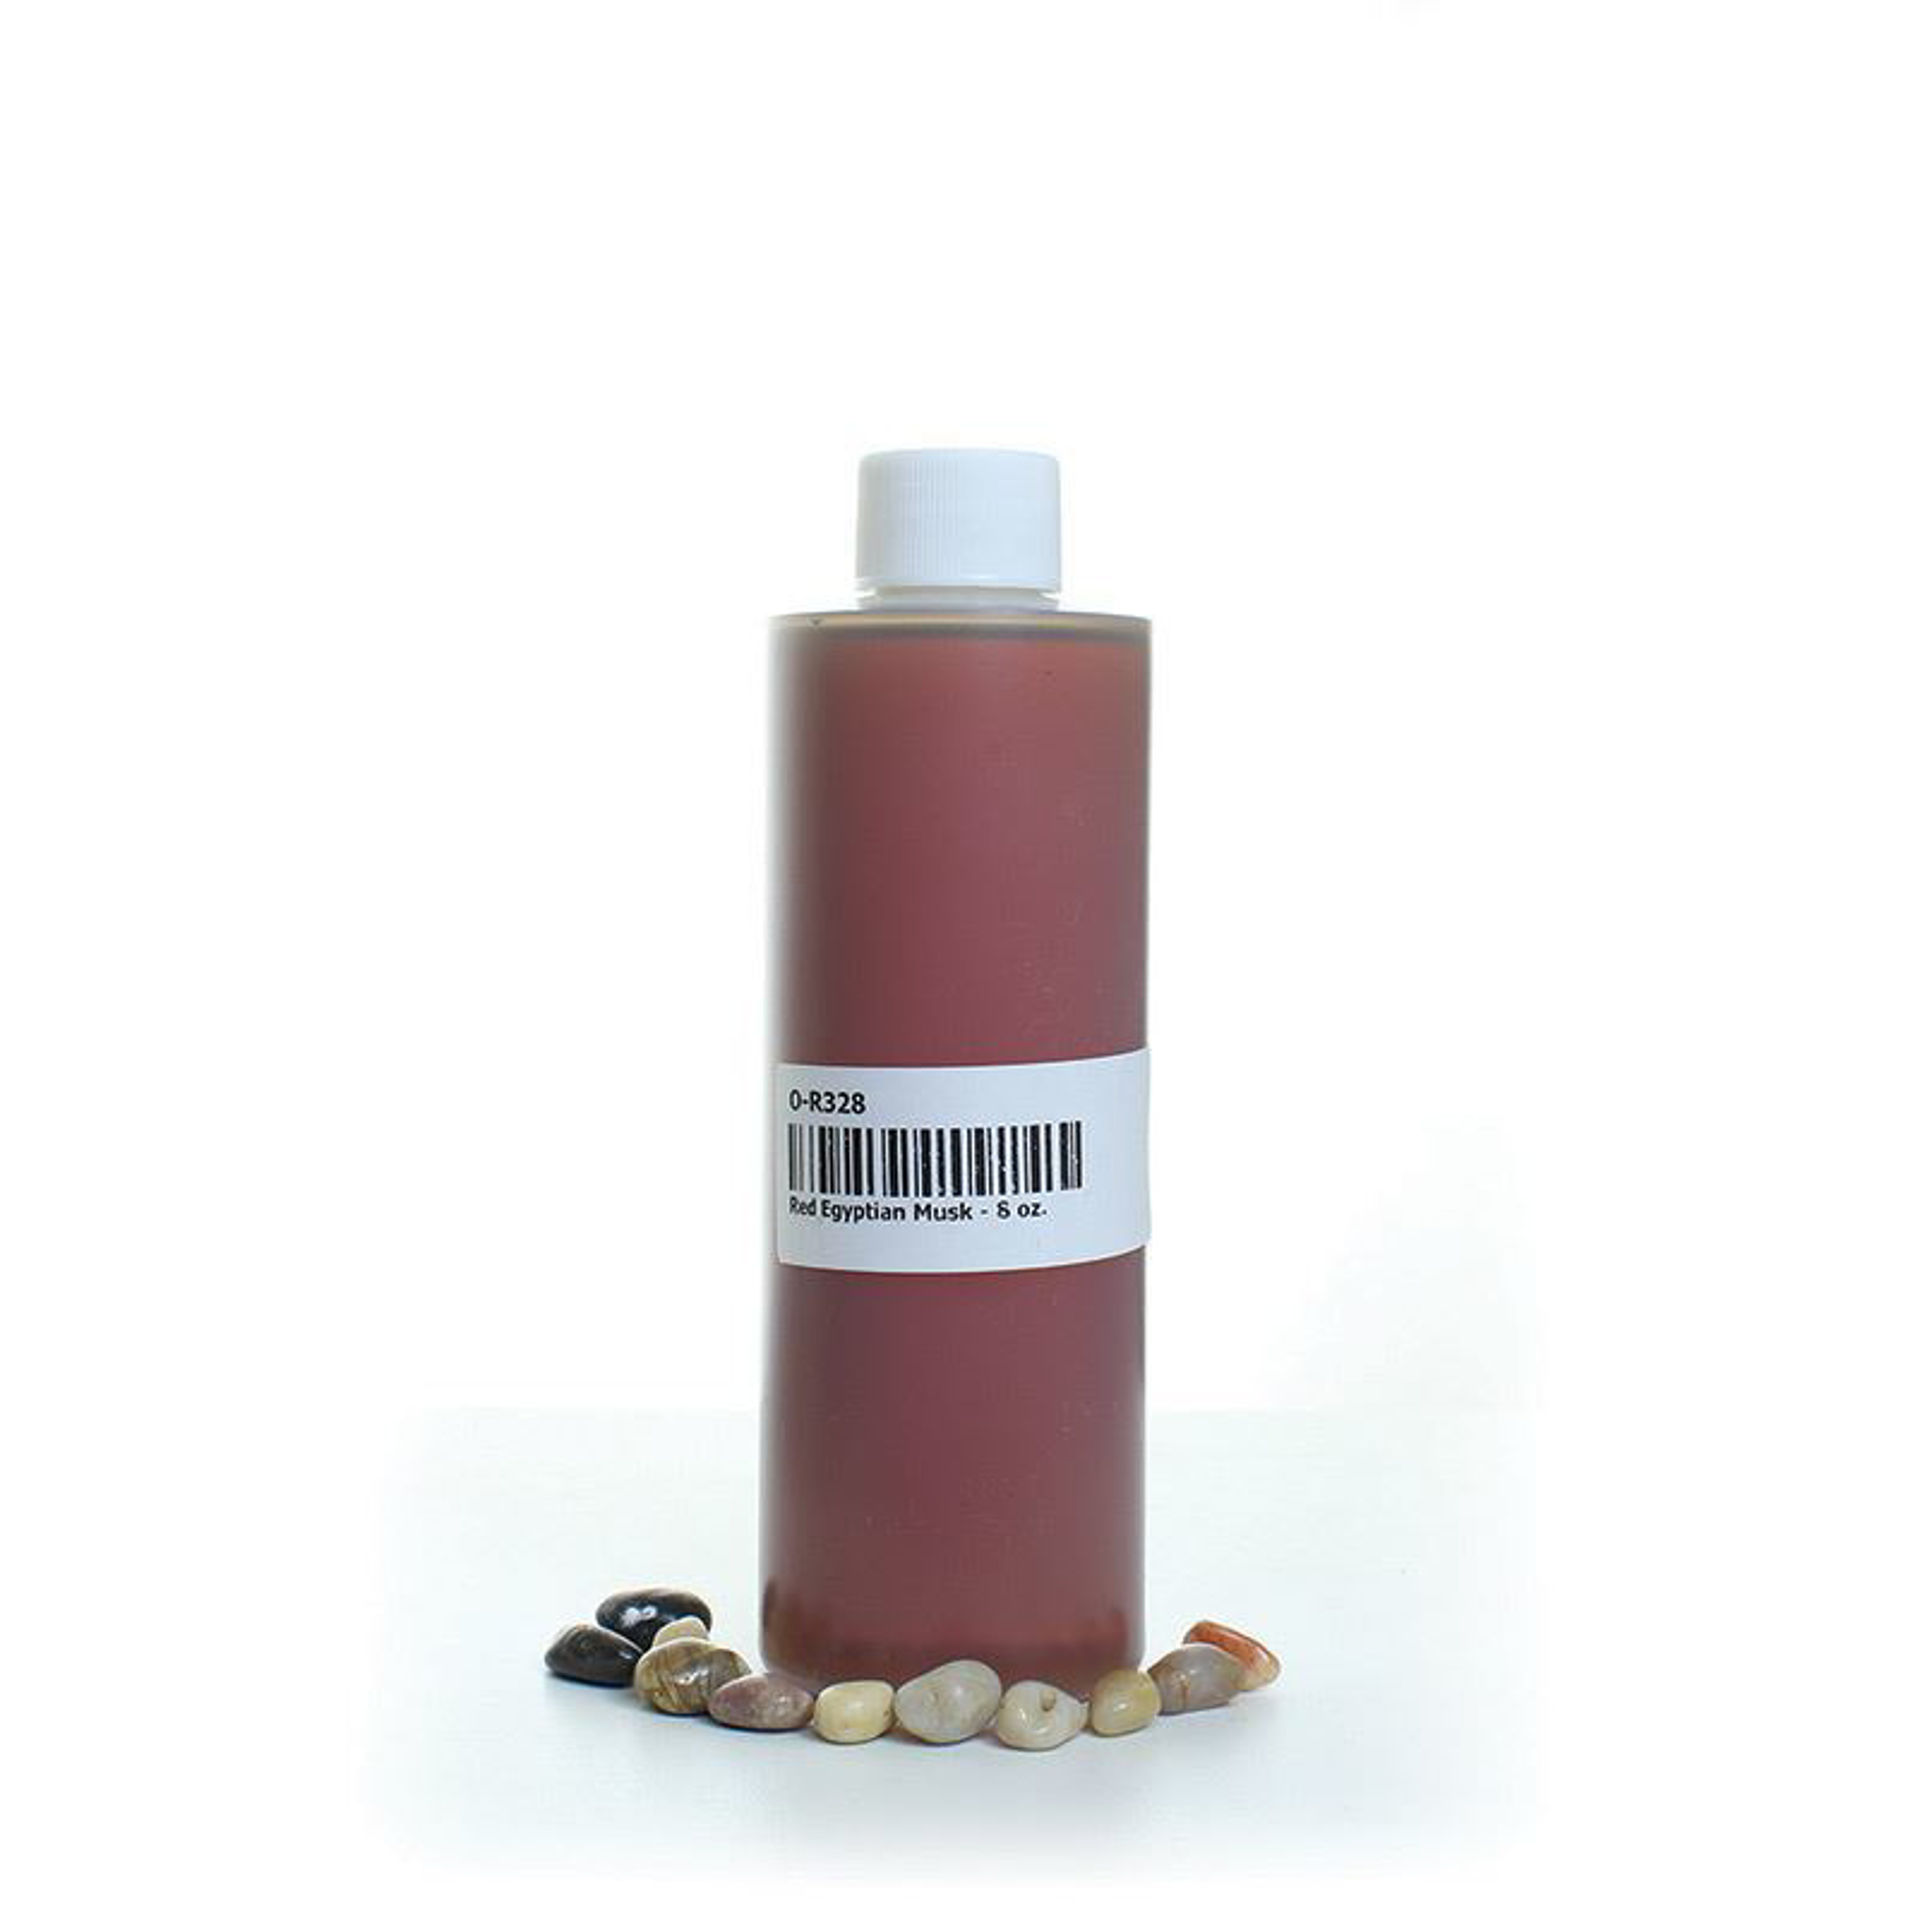 Picture of Red Egyptian Musk - 8 oz.